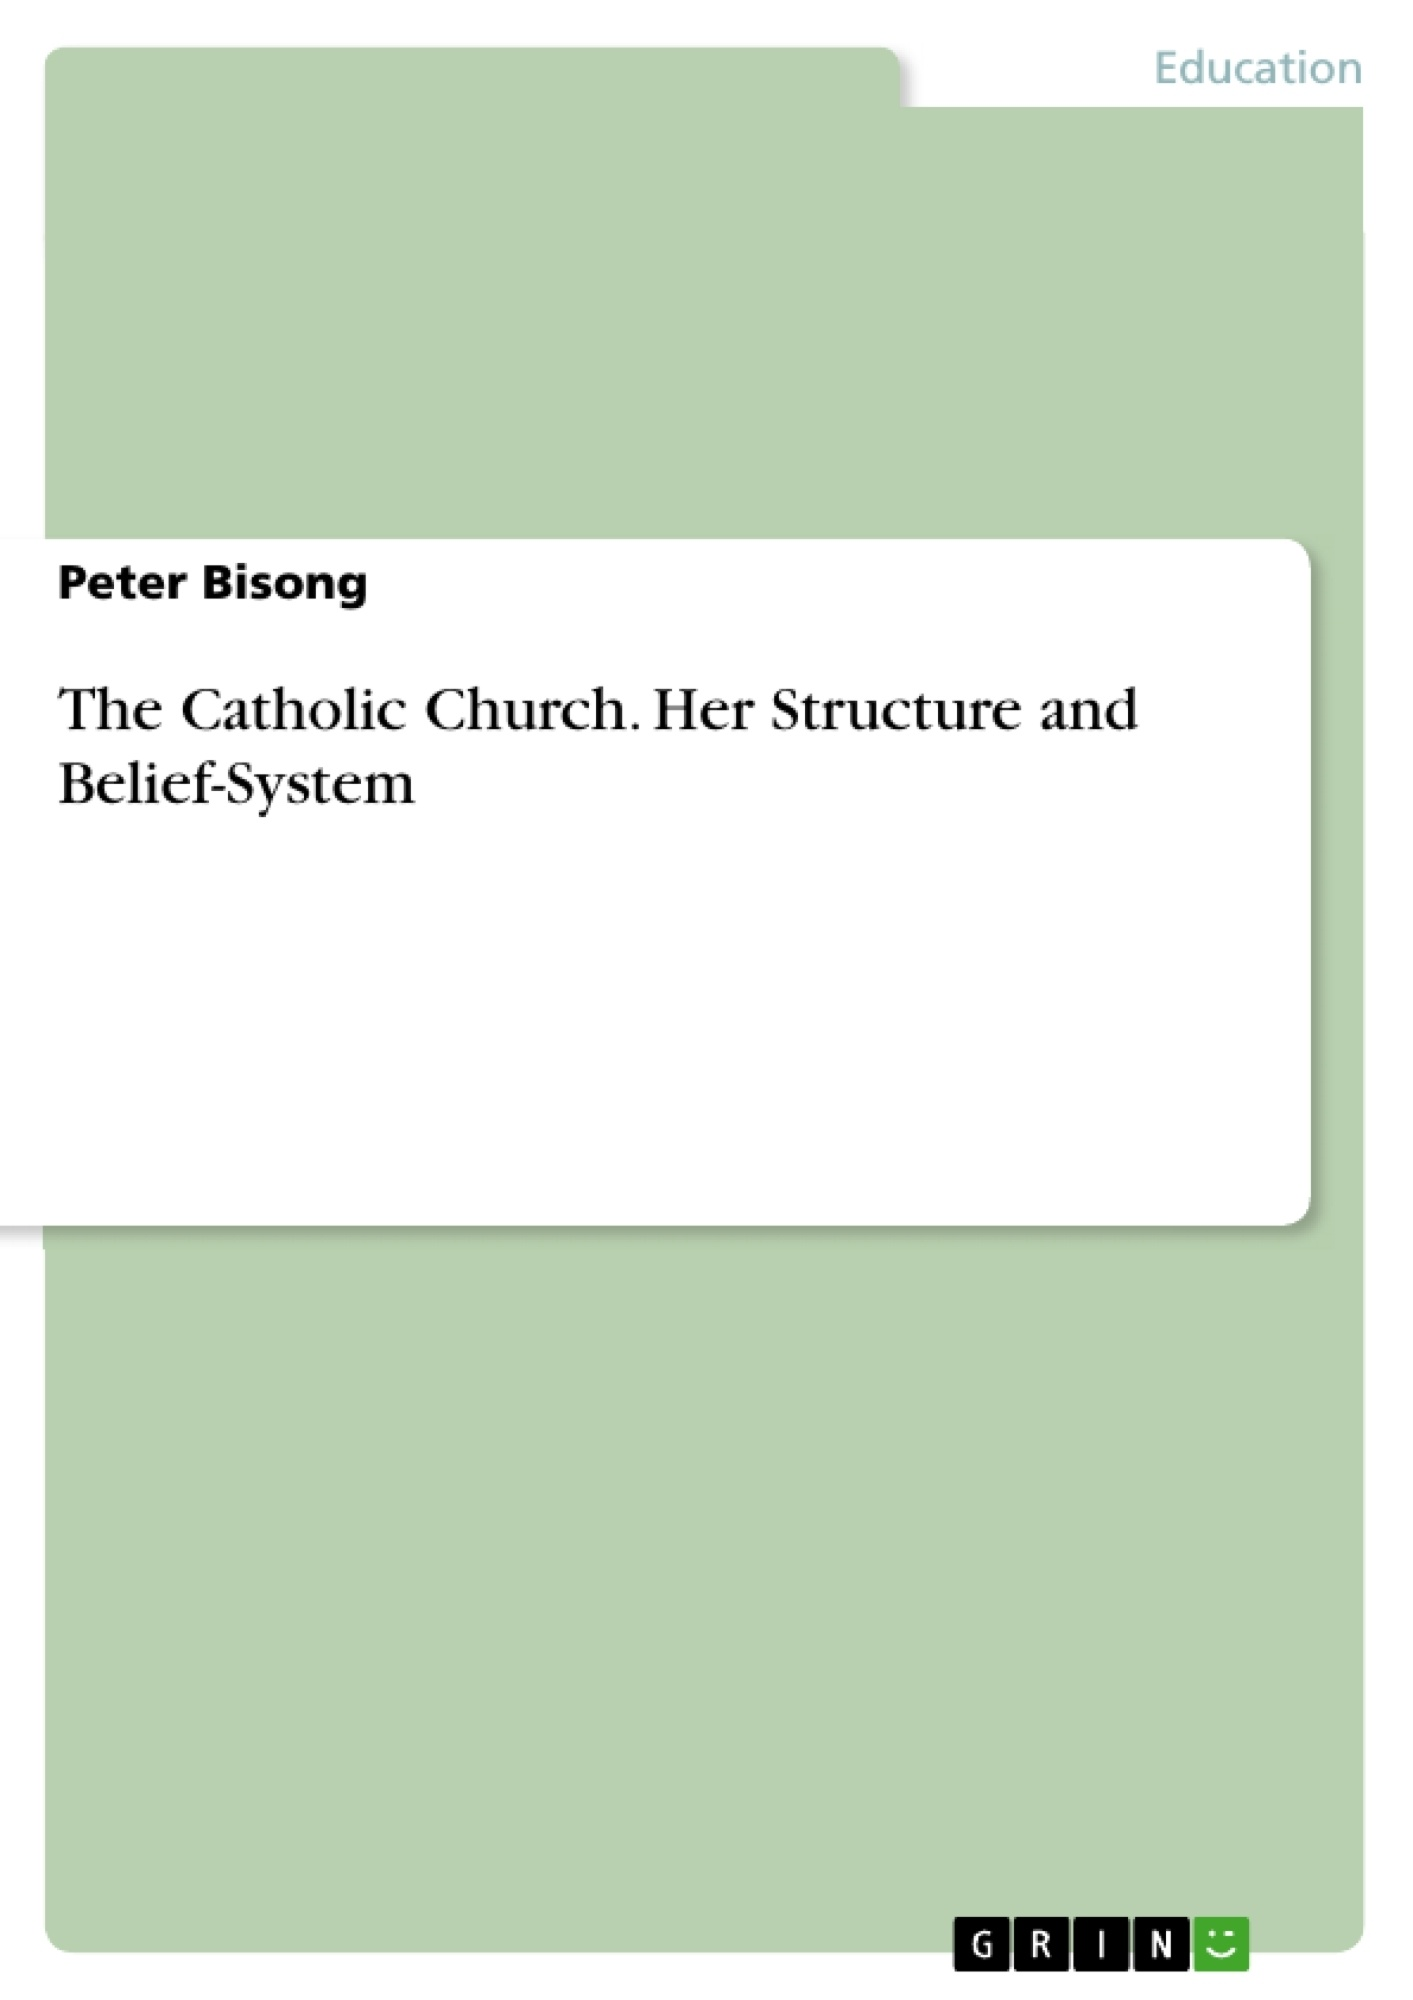 Title: The Catholic Church. Her Structure and Belief-System